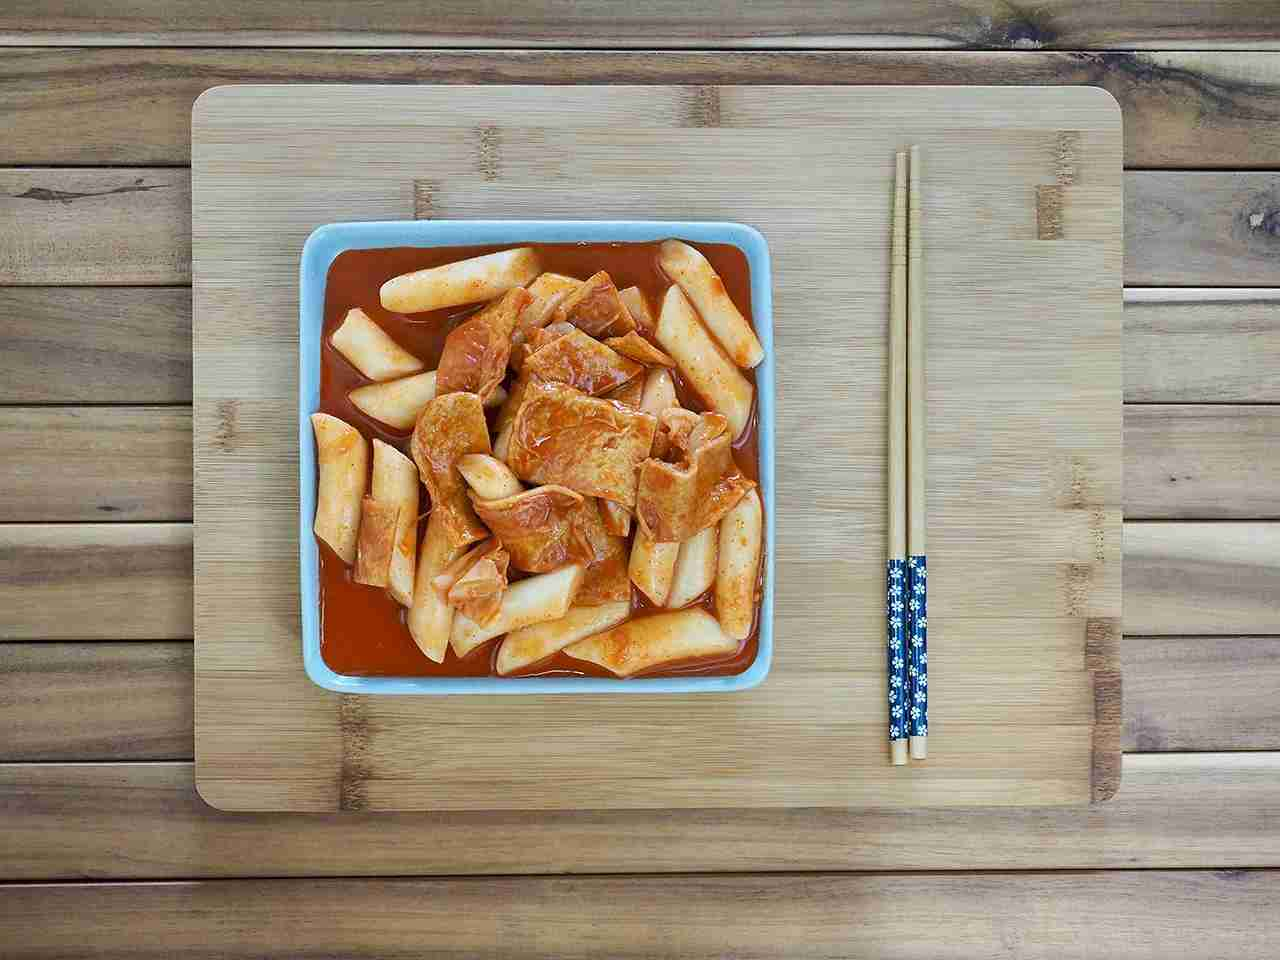 Try a traditional Korean dish of tteokbokki. (Photo by SUNGSU HAN/Getty Images)